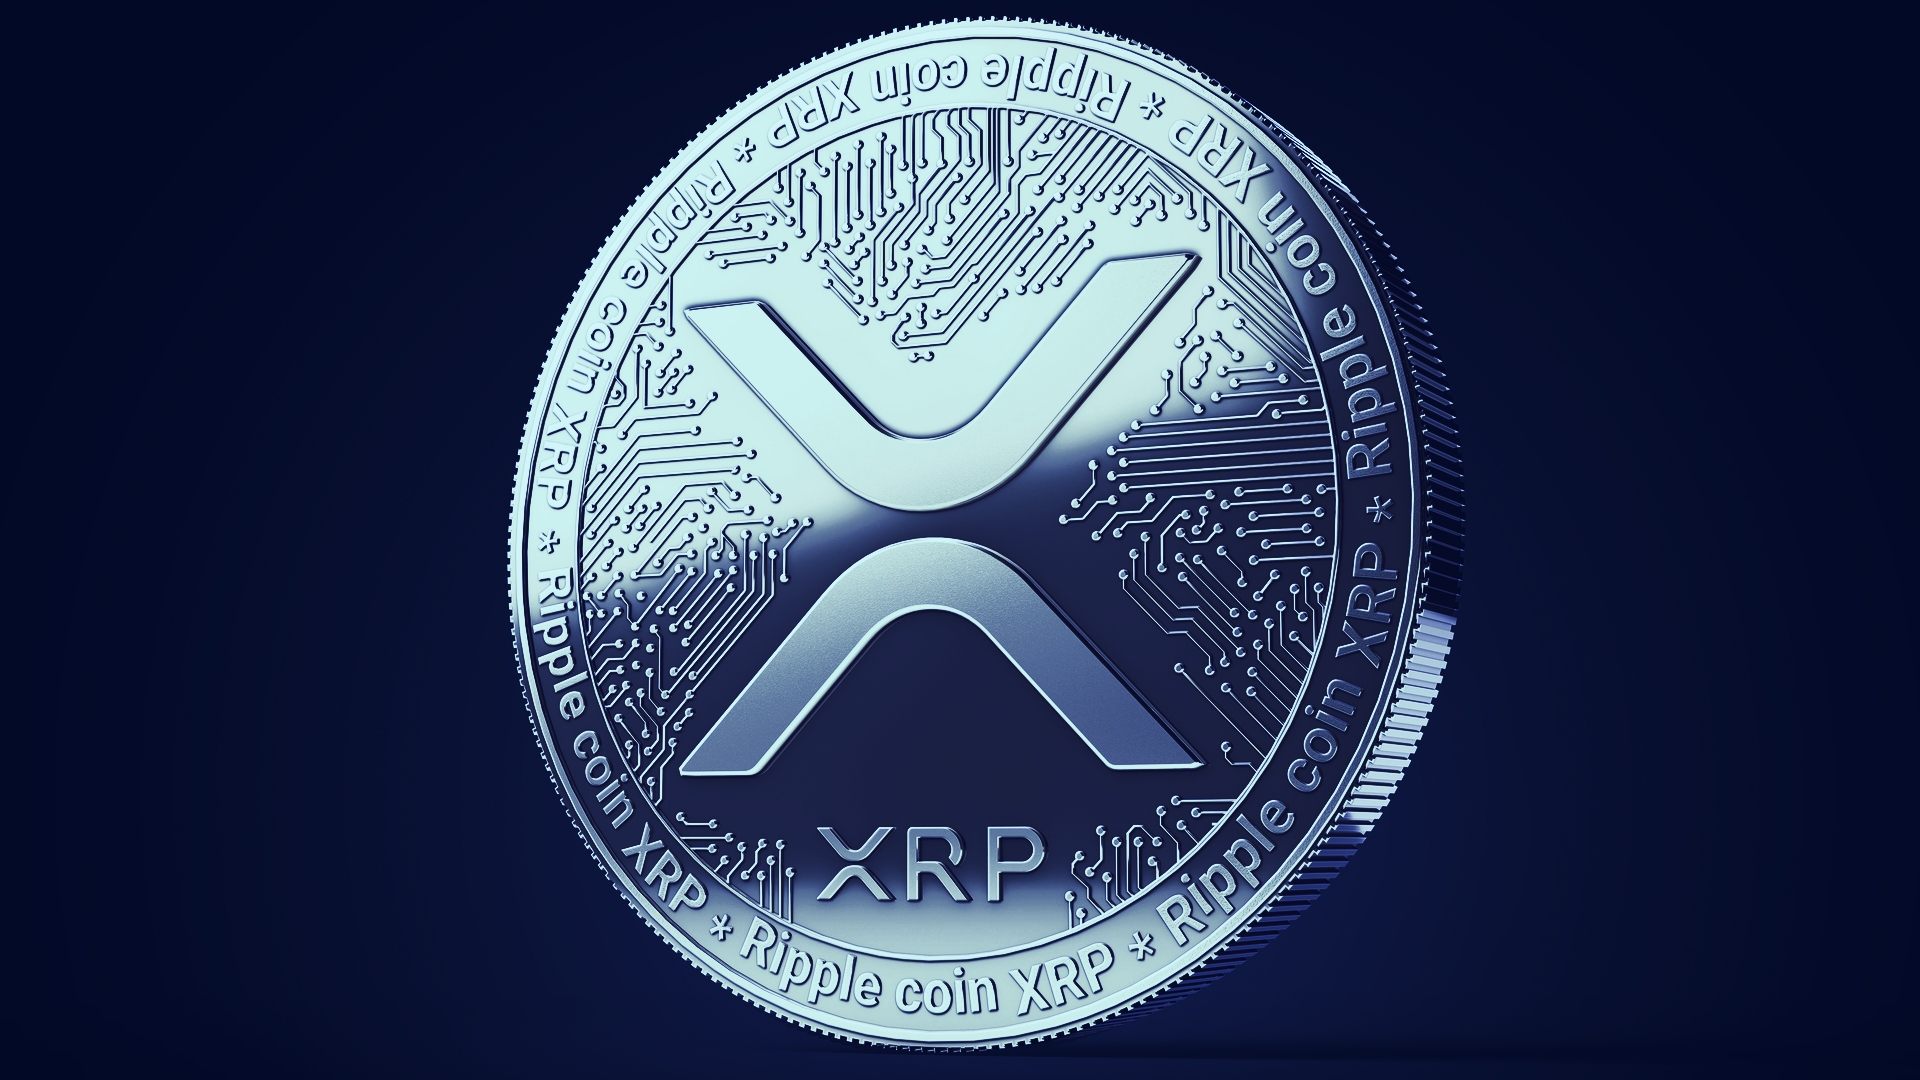 How to Buy XRP (Ripple): 2021 update